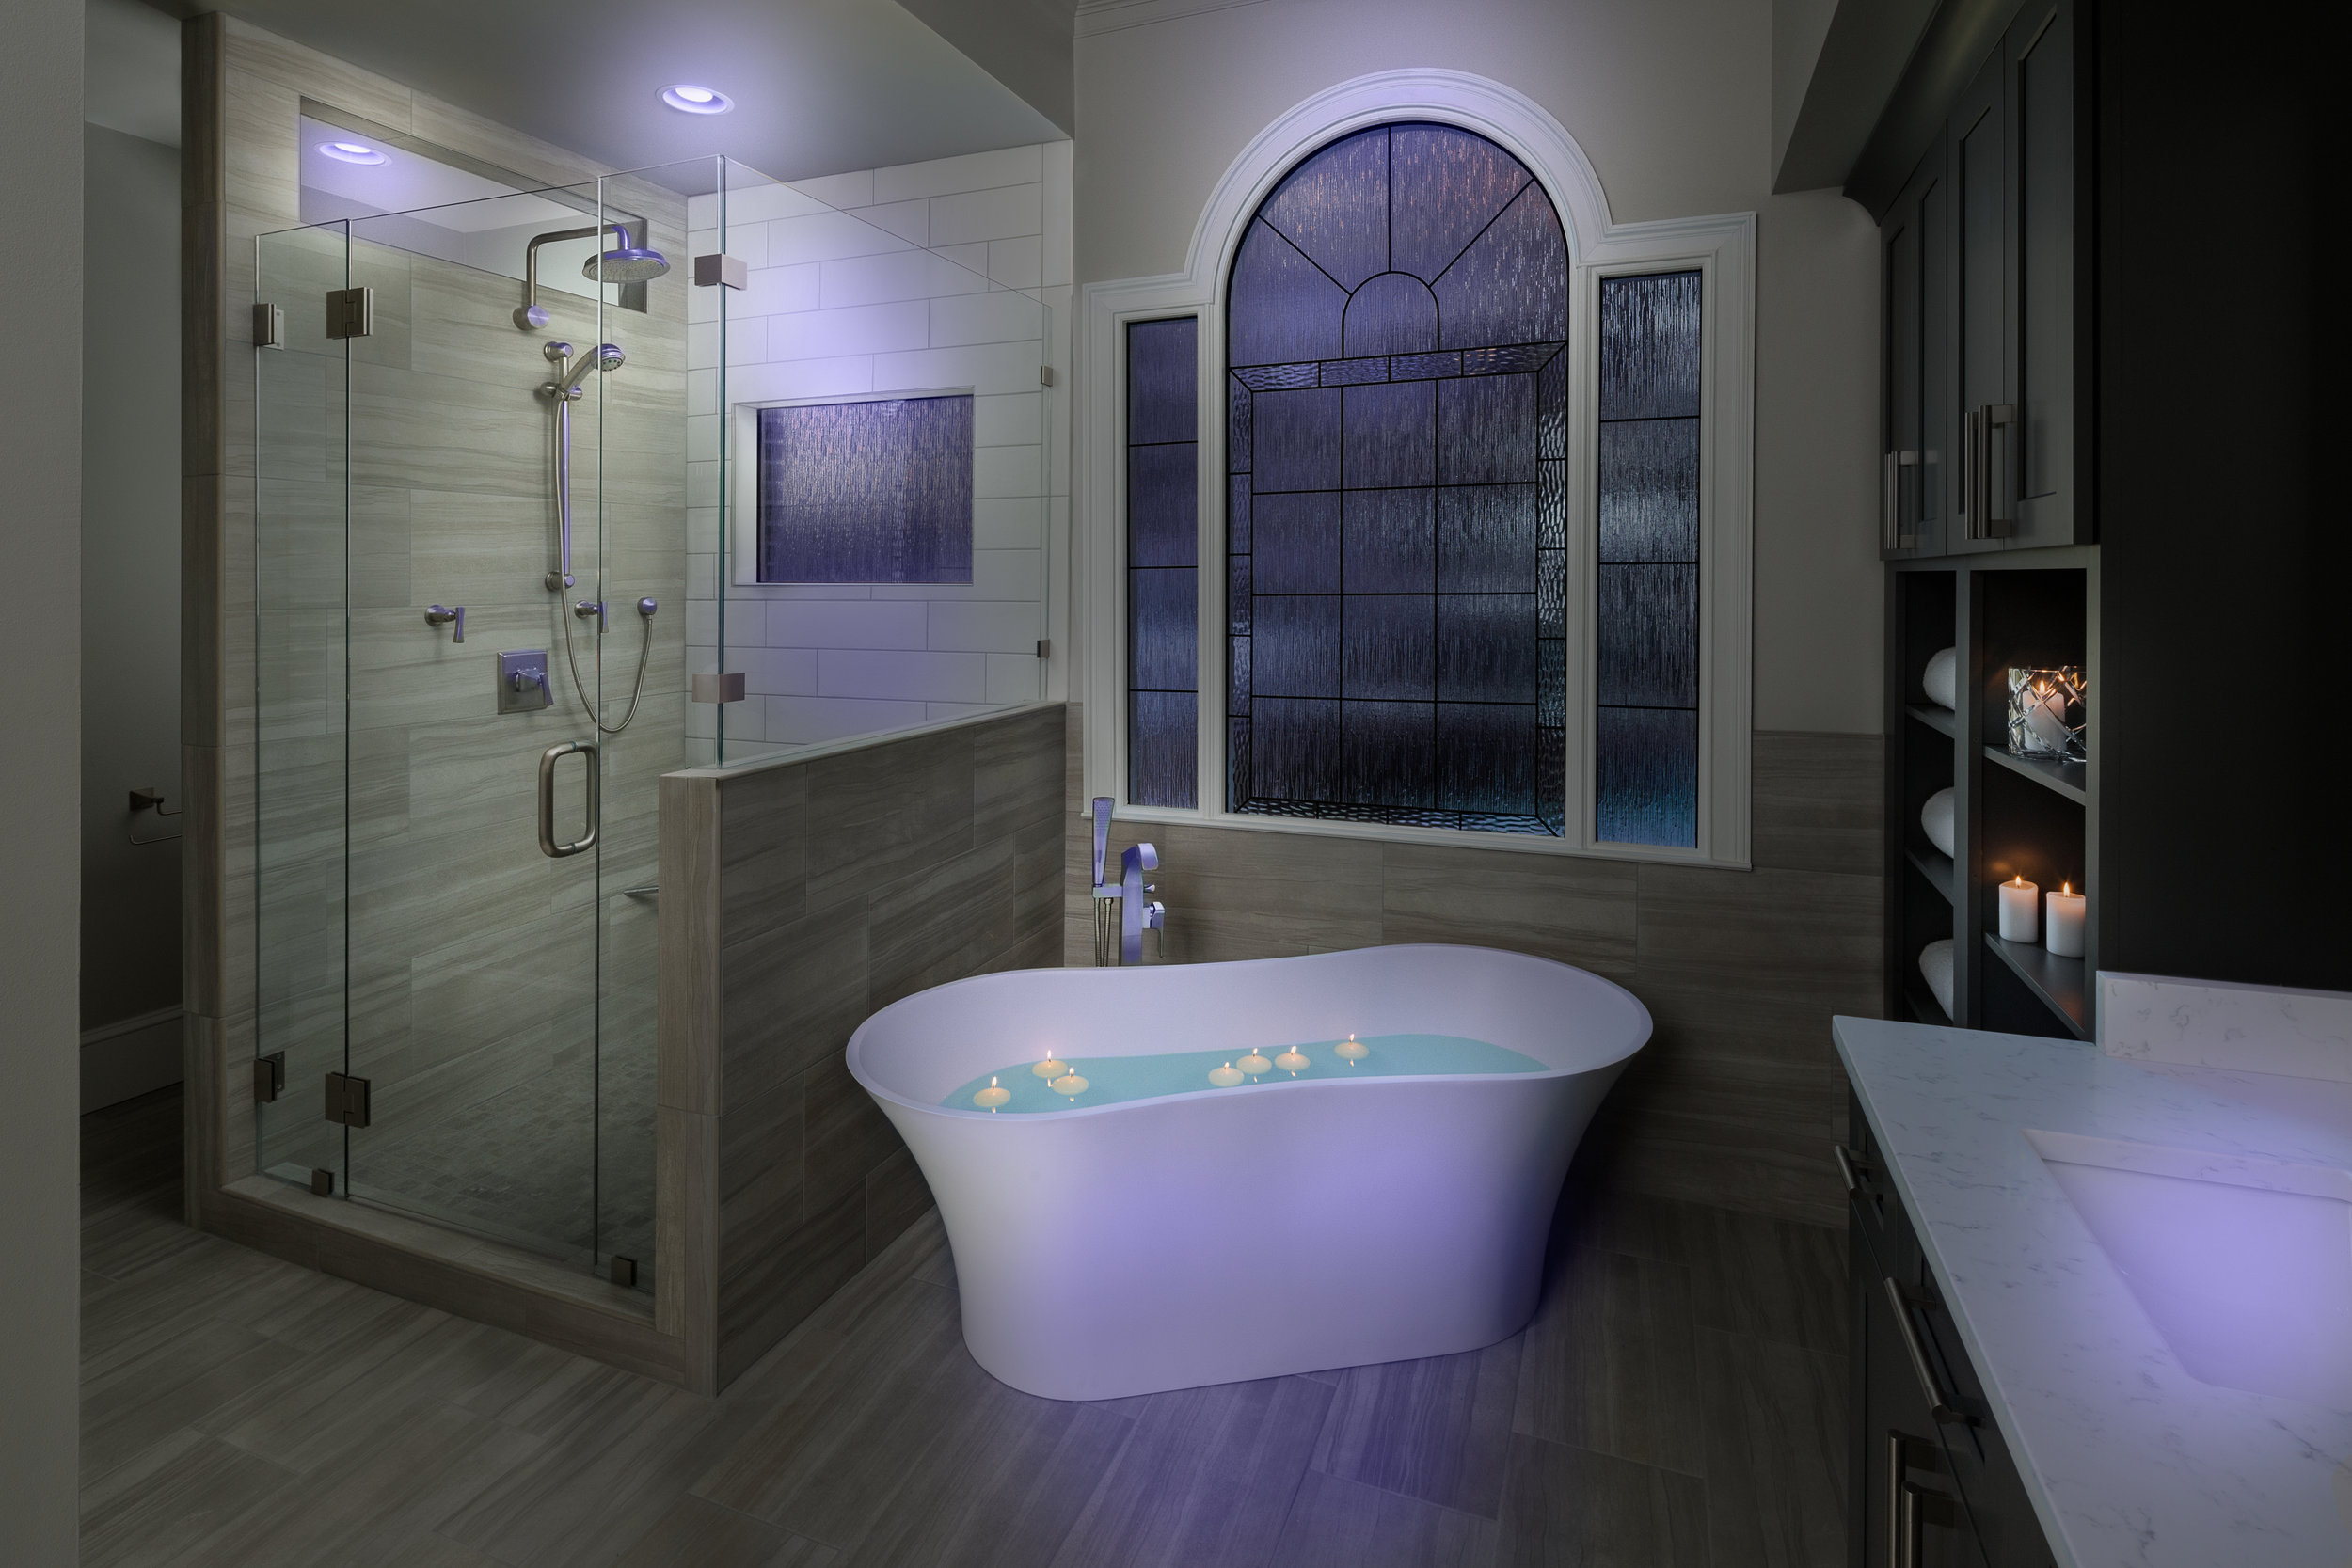 Direct Build Bathroom Sales Product Shoot - Mood Lighting